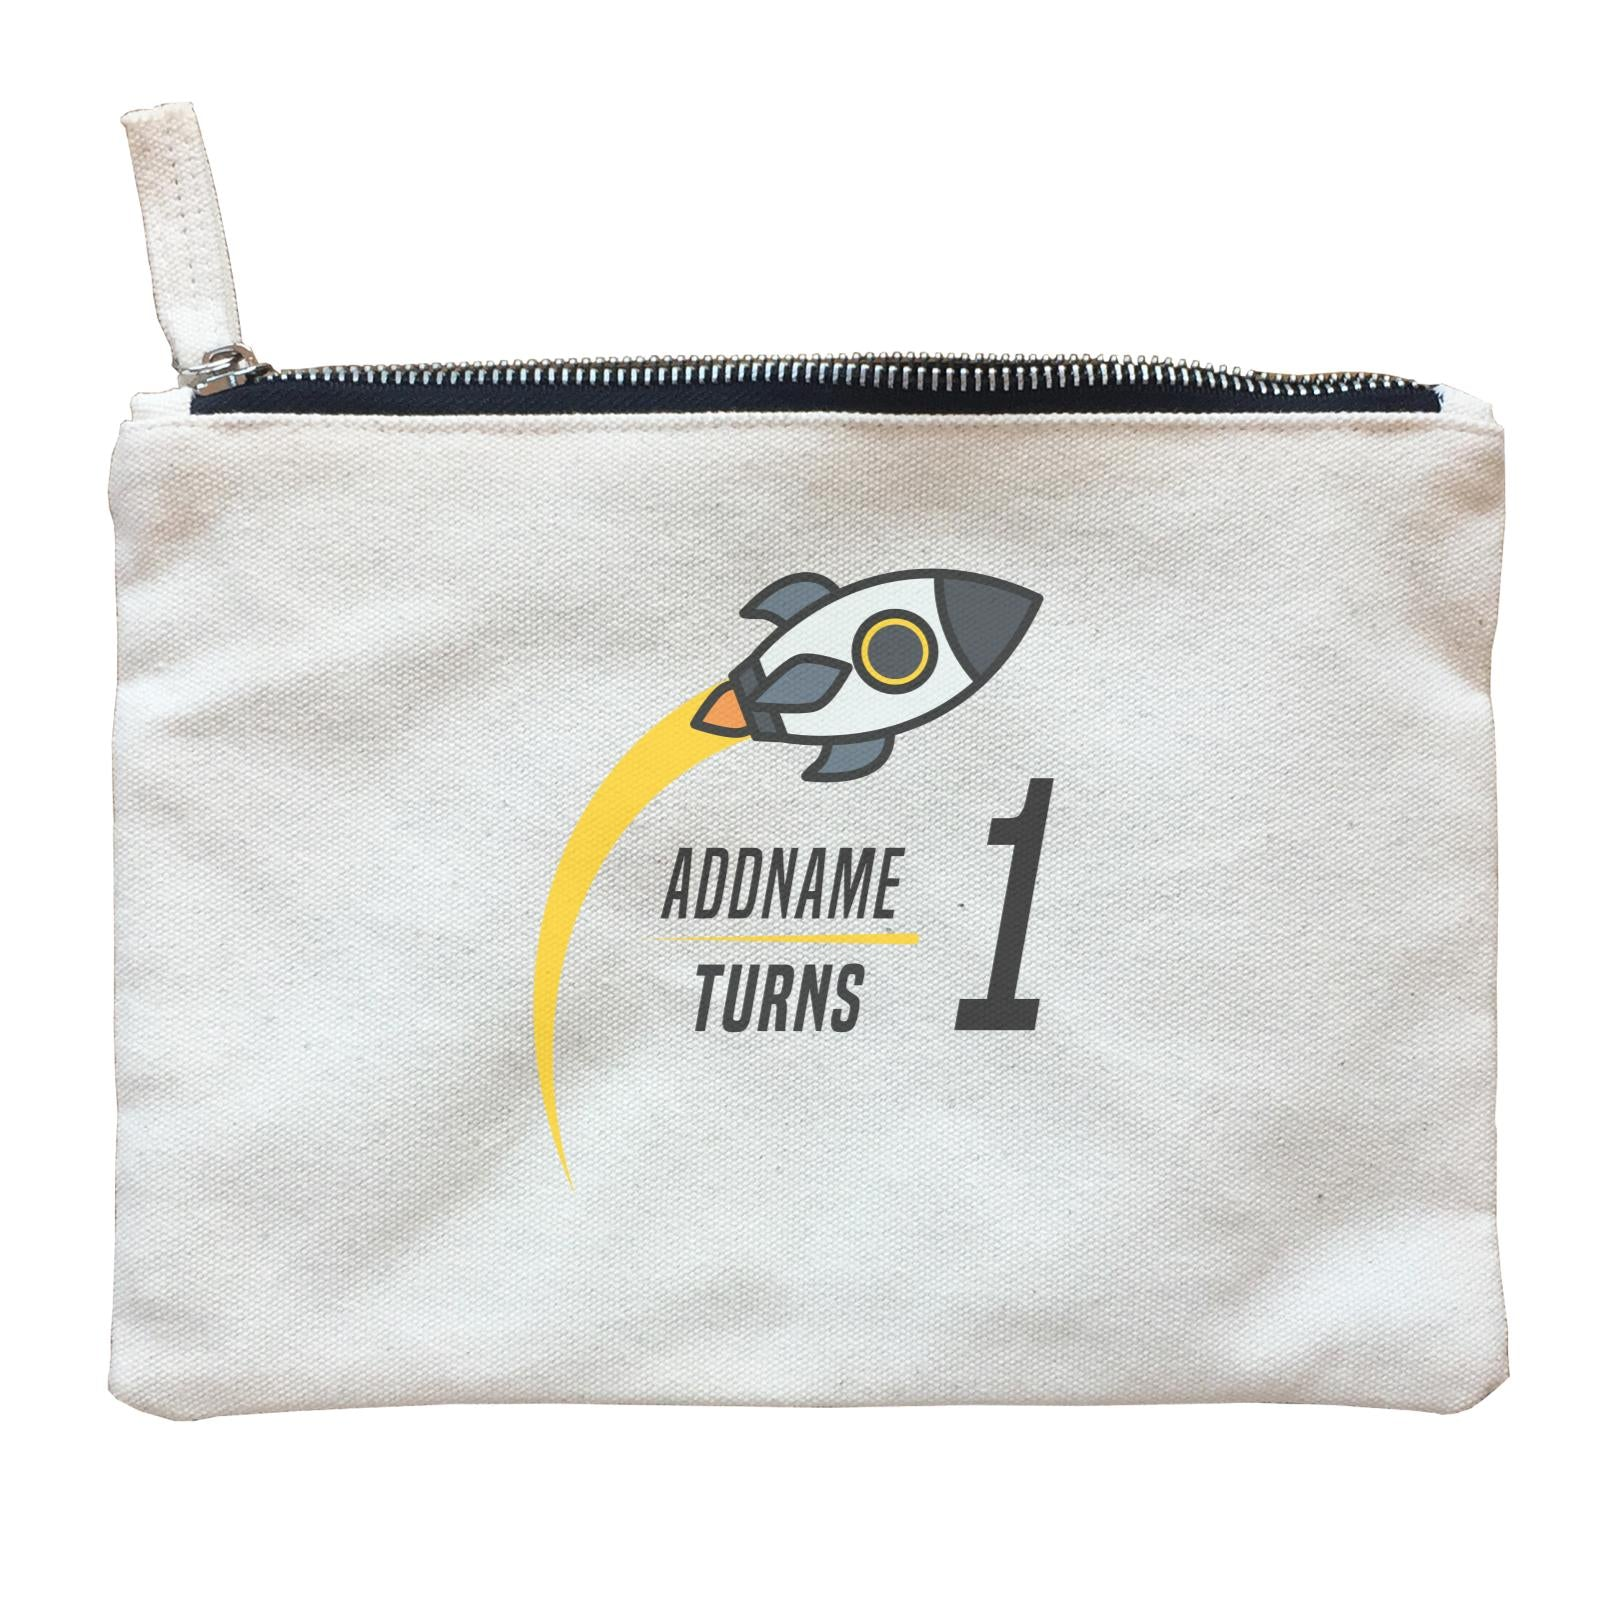 Birthday Flying Rocket To Galaxy Addname Turn 1 Zipper Pouch